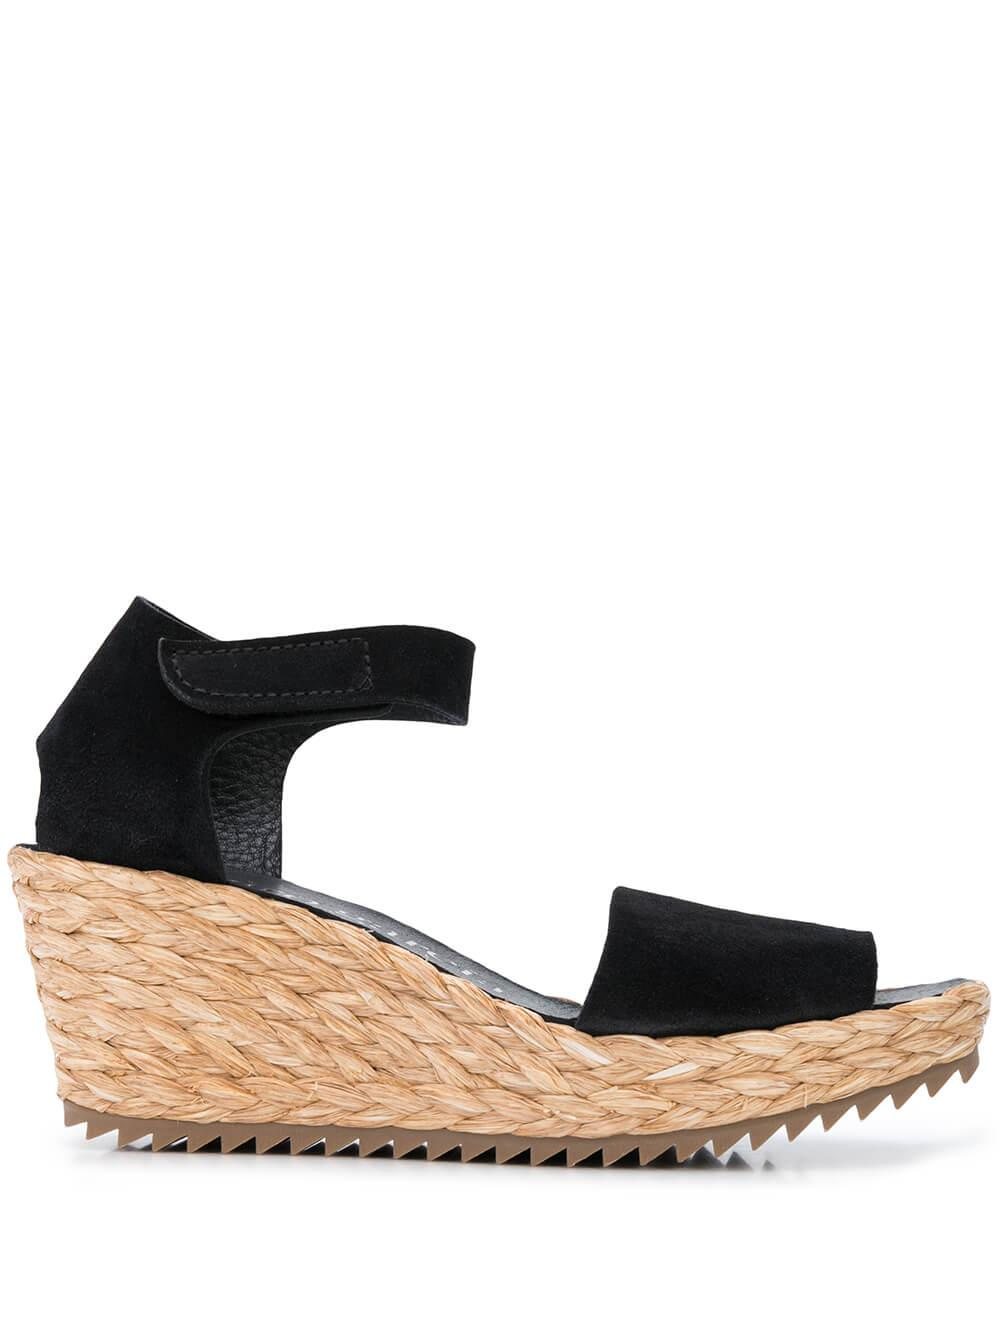 Espadrille Wedge With Ankle Strap Item # FANDRA-S20